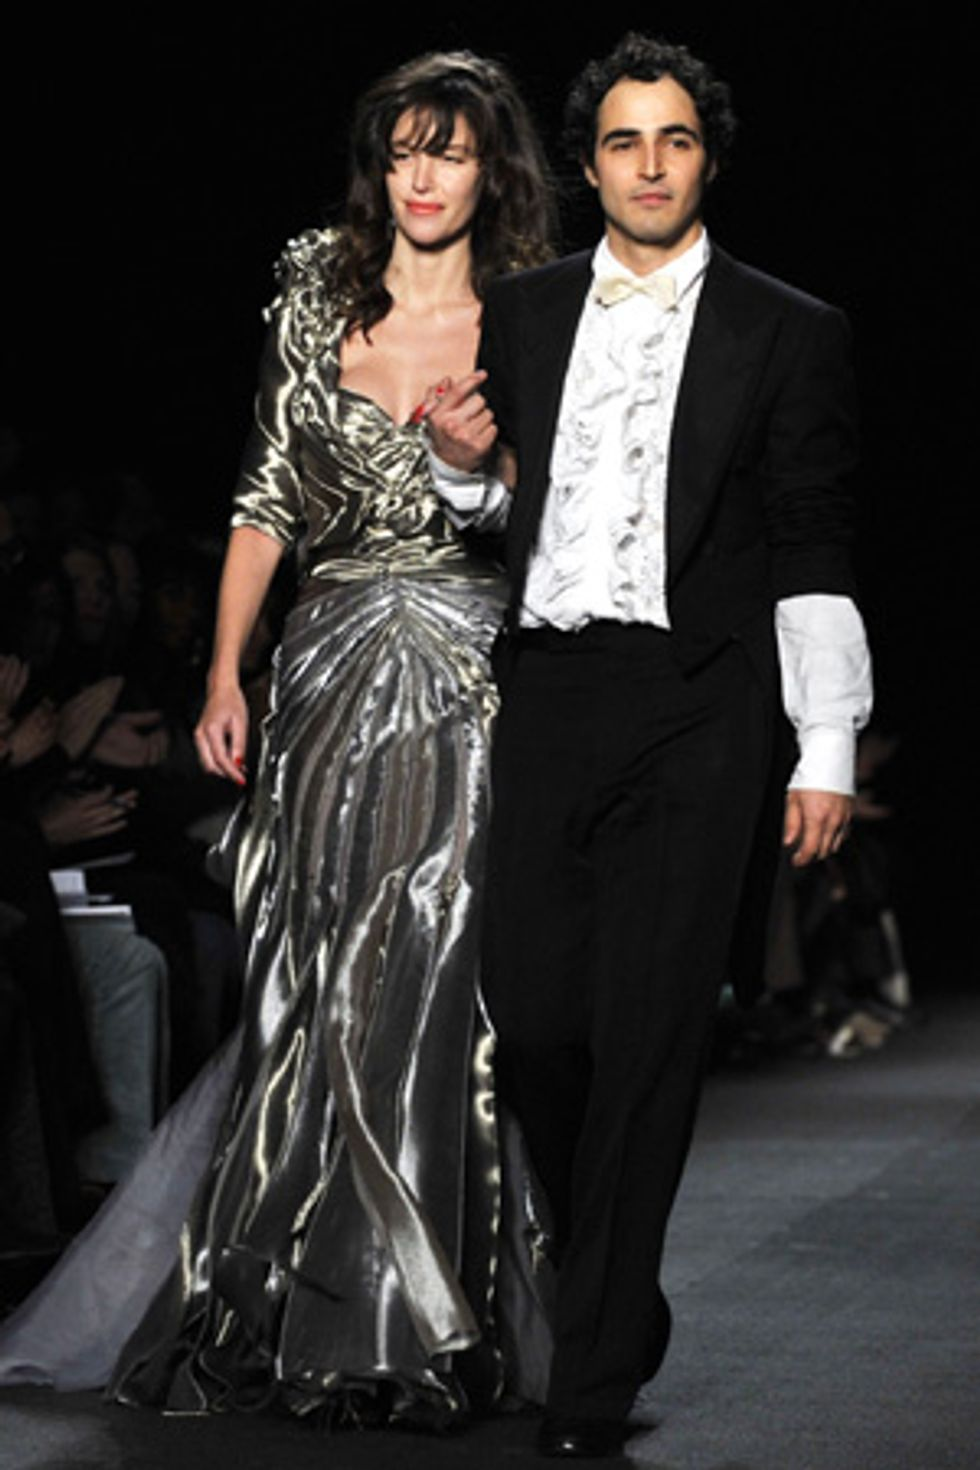 About Last Night... The Zac Posen Show